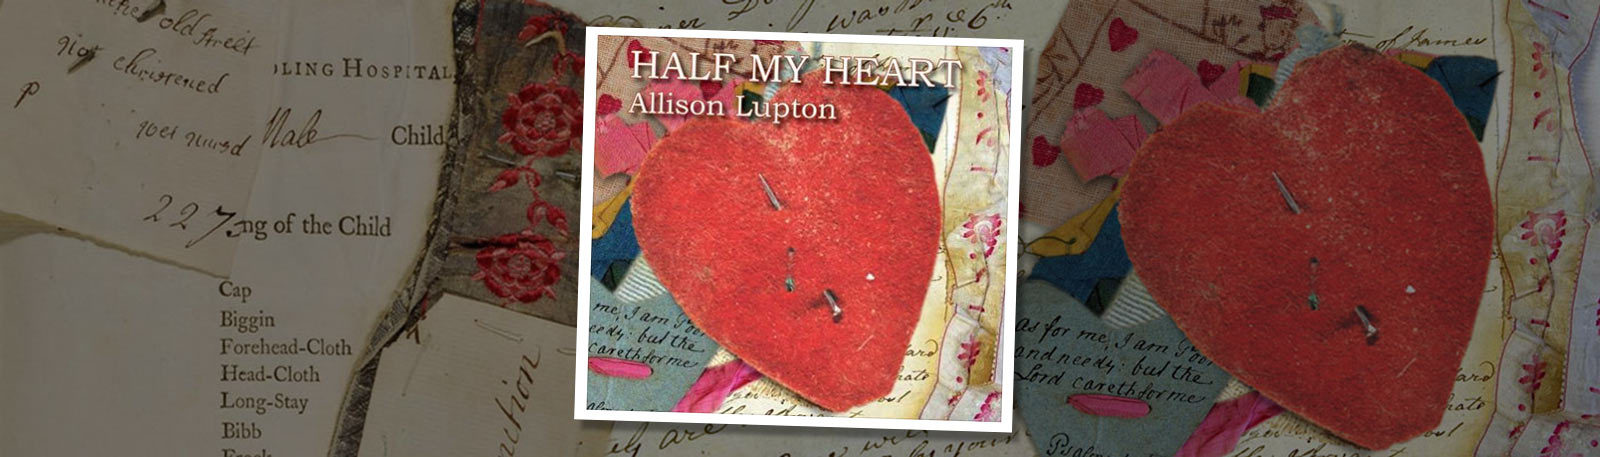 Allison Lupton, Half My Heart